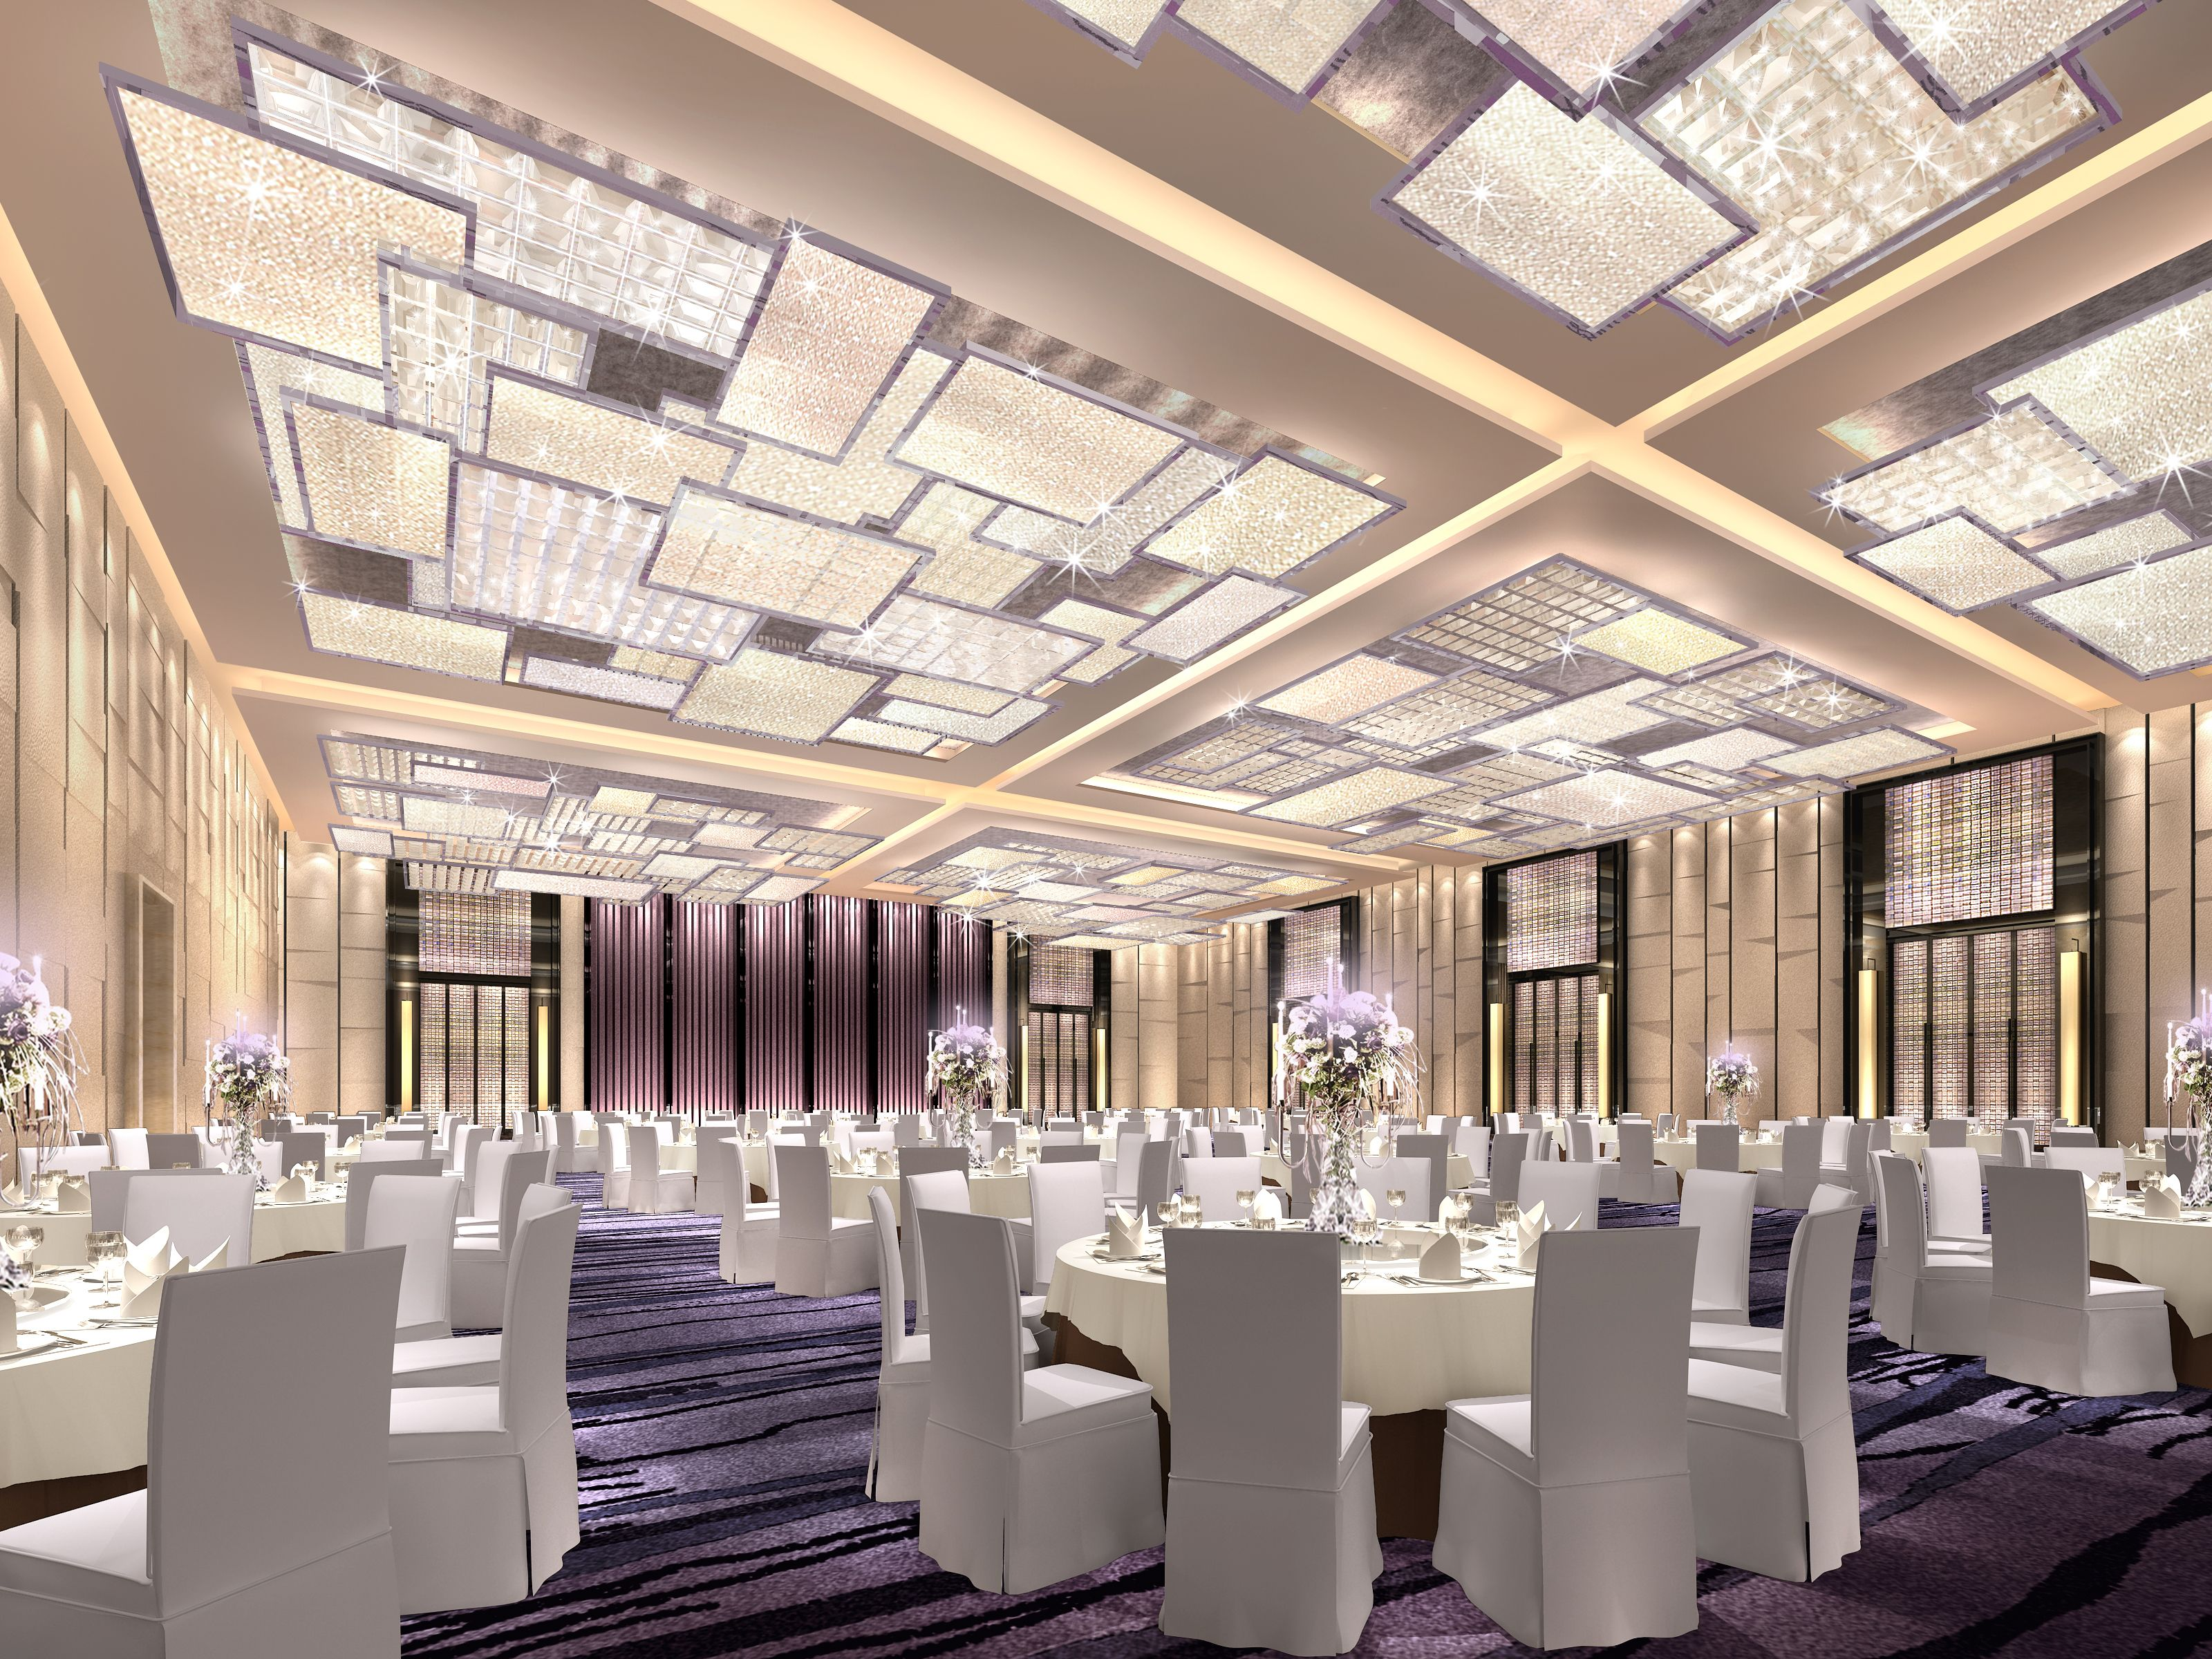 Langham hotel grand ballroom venus private function for Hotel ceiling design